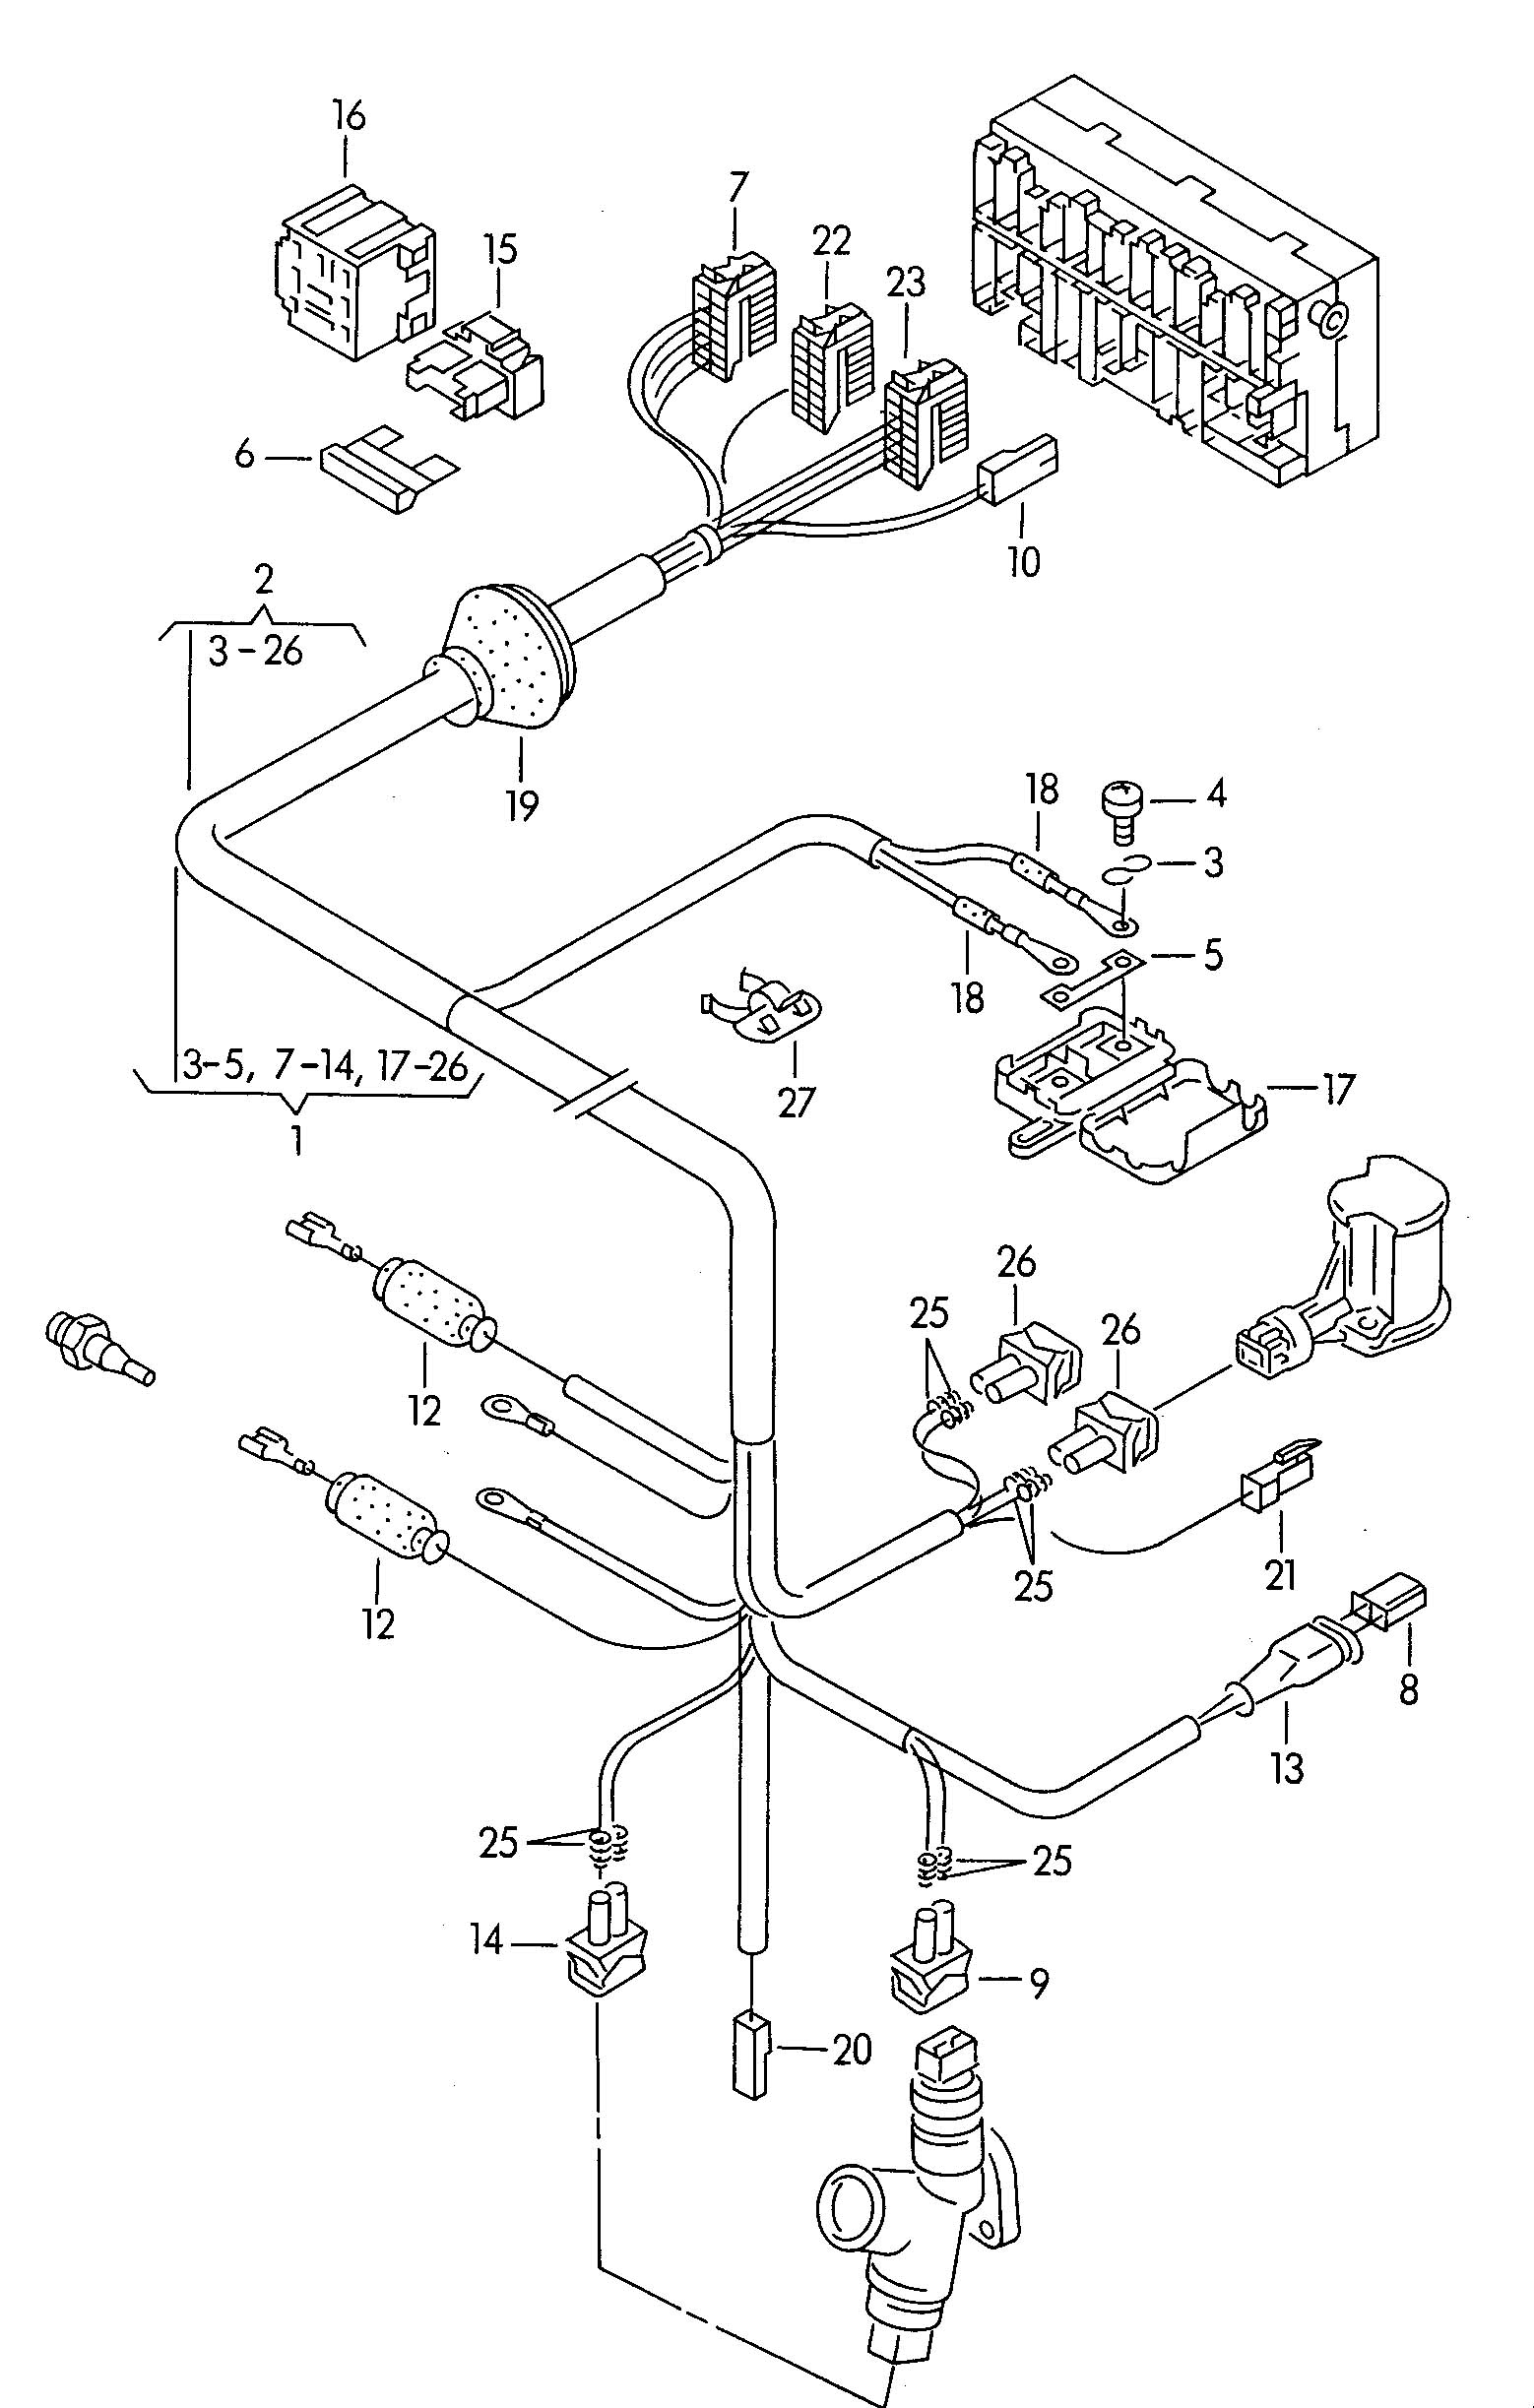 1999 Vw Eurovan Wiring Diagram